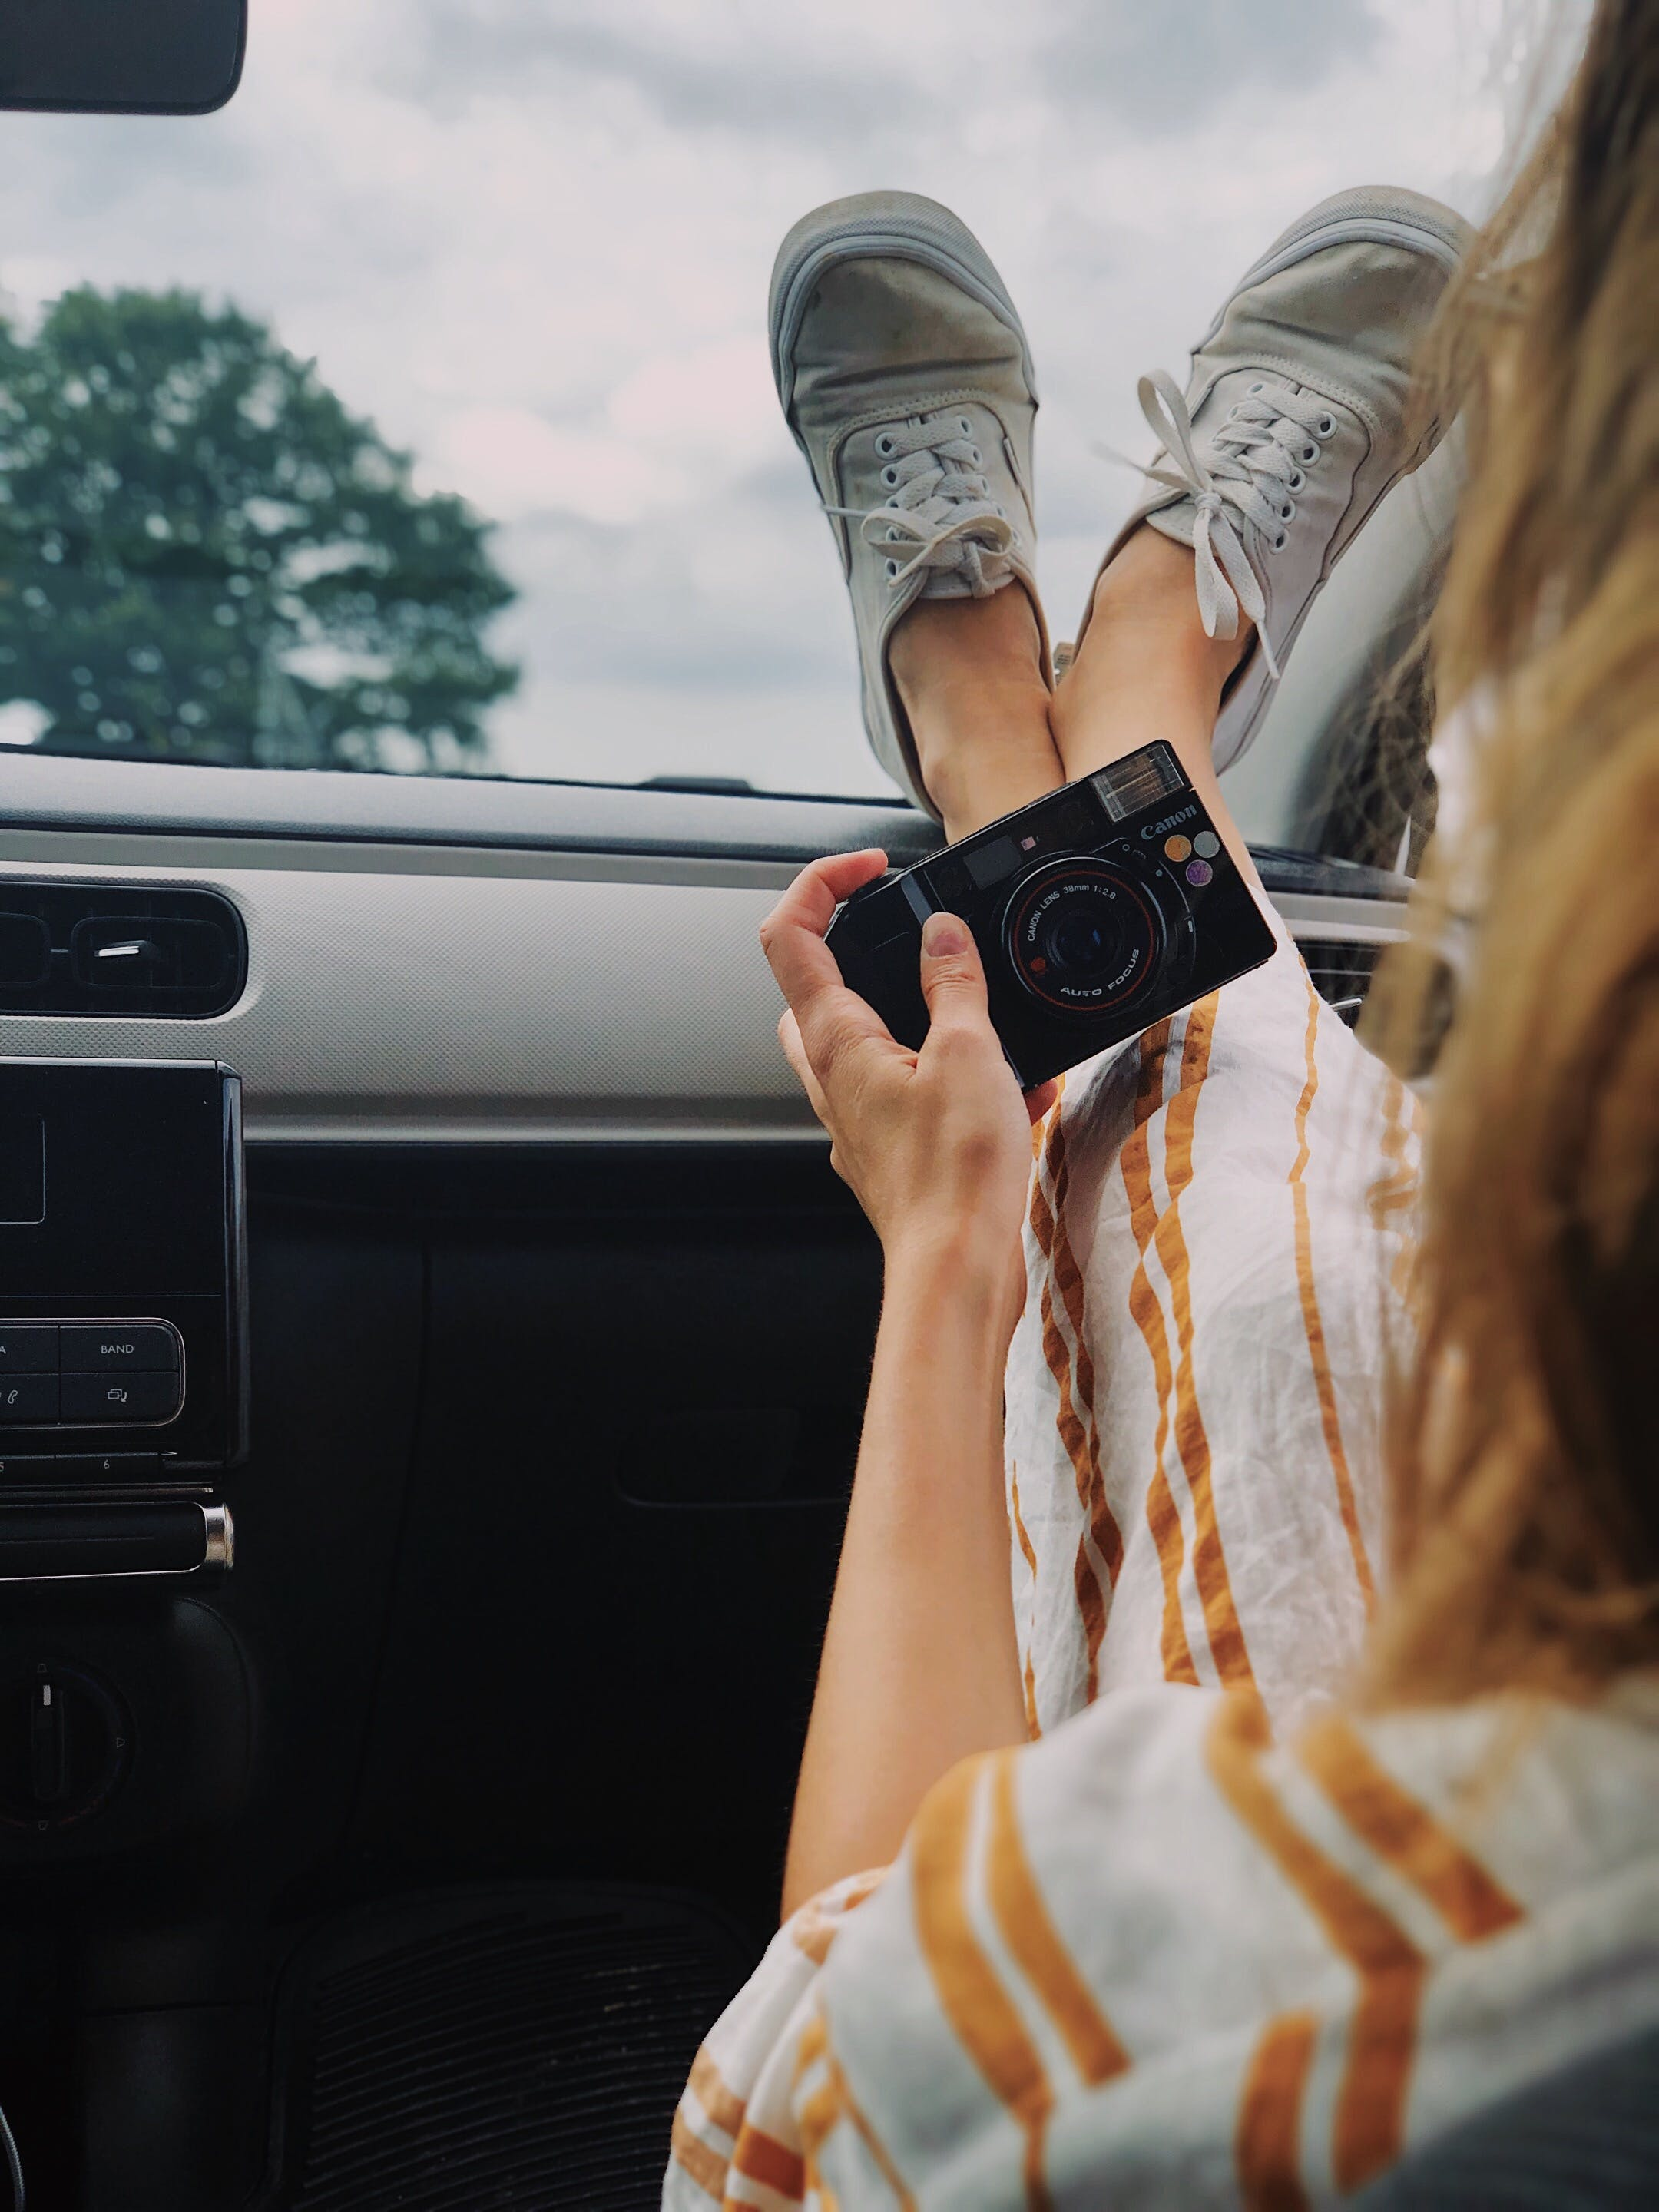 Woman Holding Compact Camera While Feet On Top Of Vehicle Dashboard